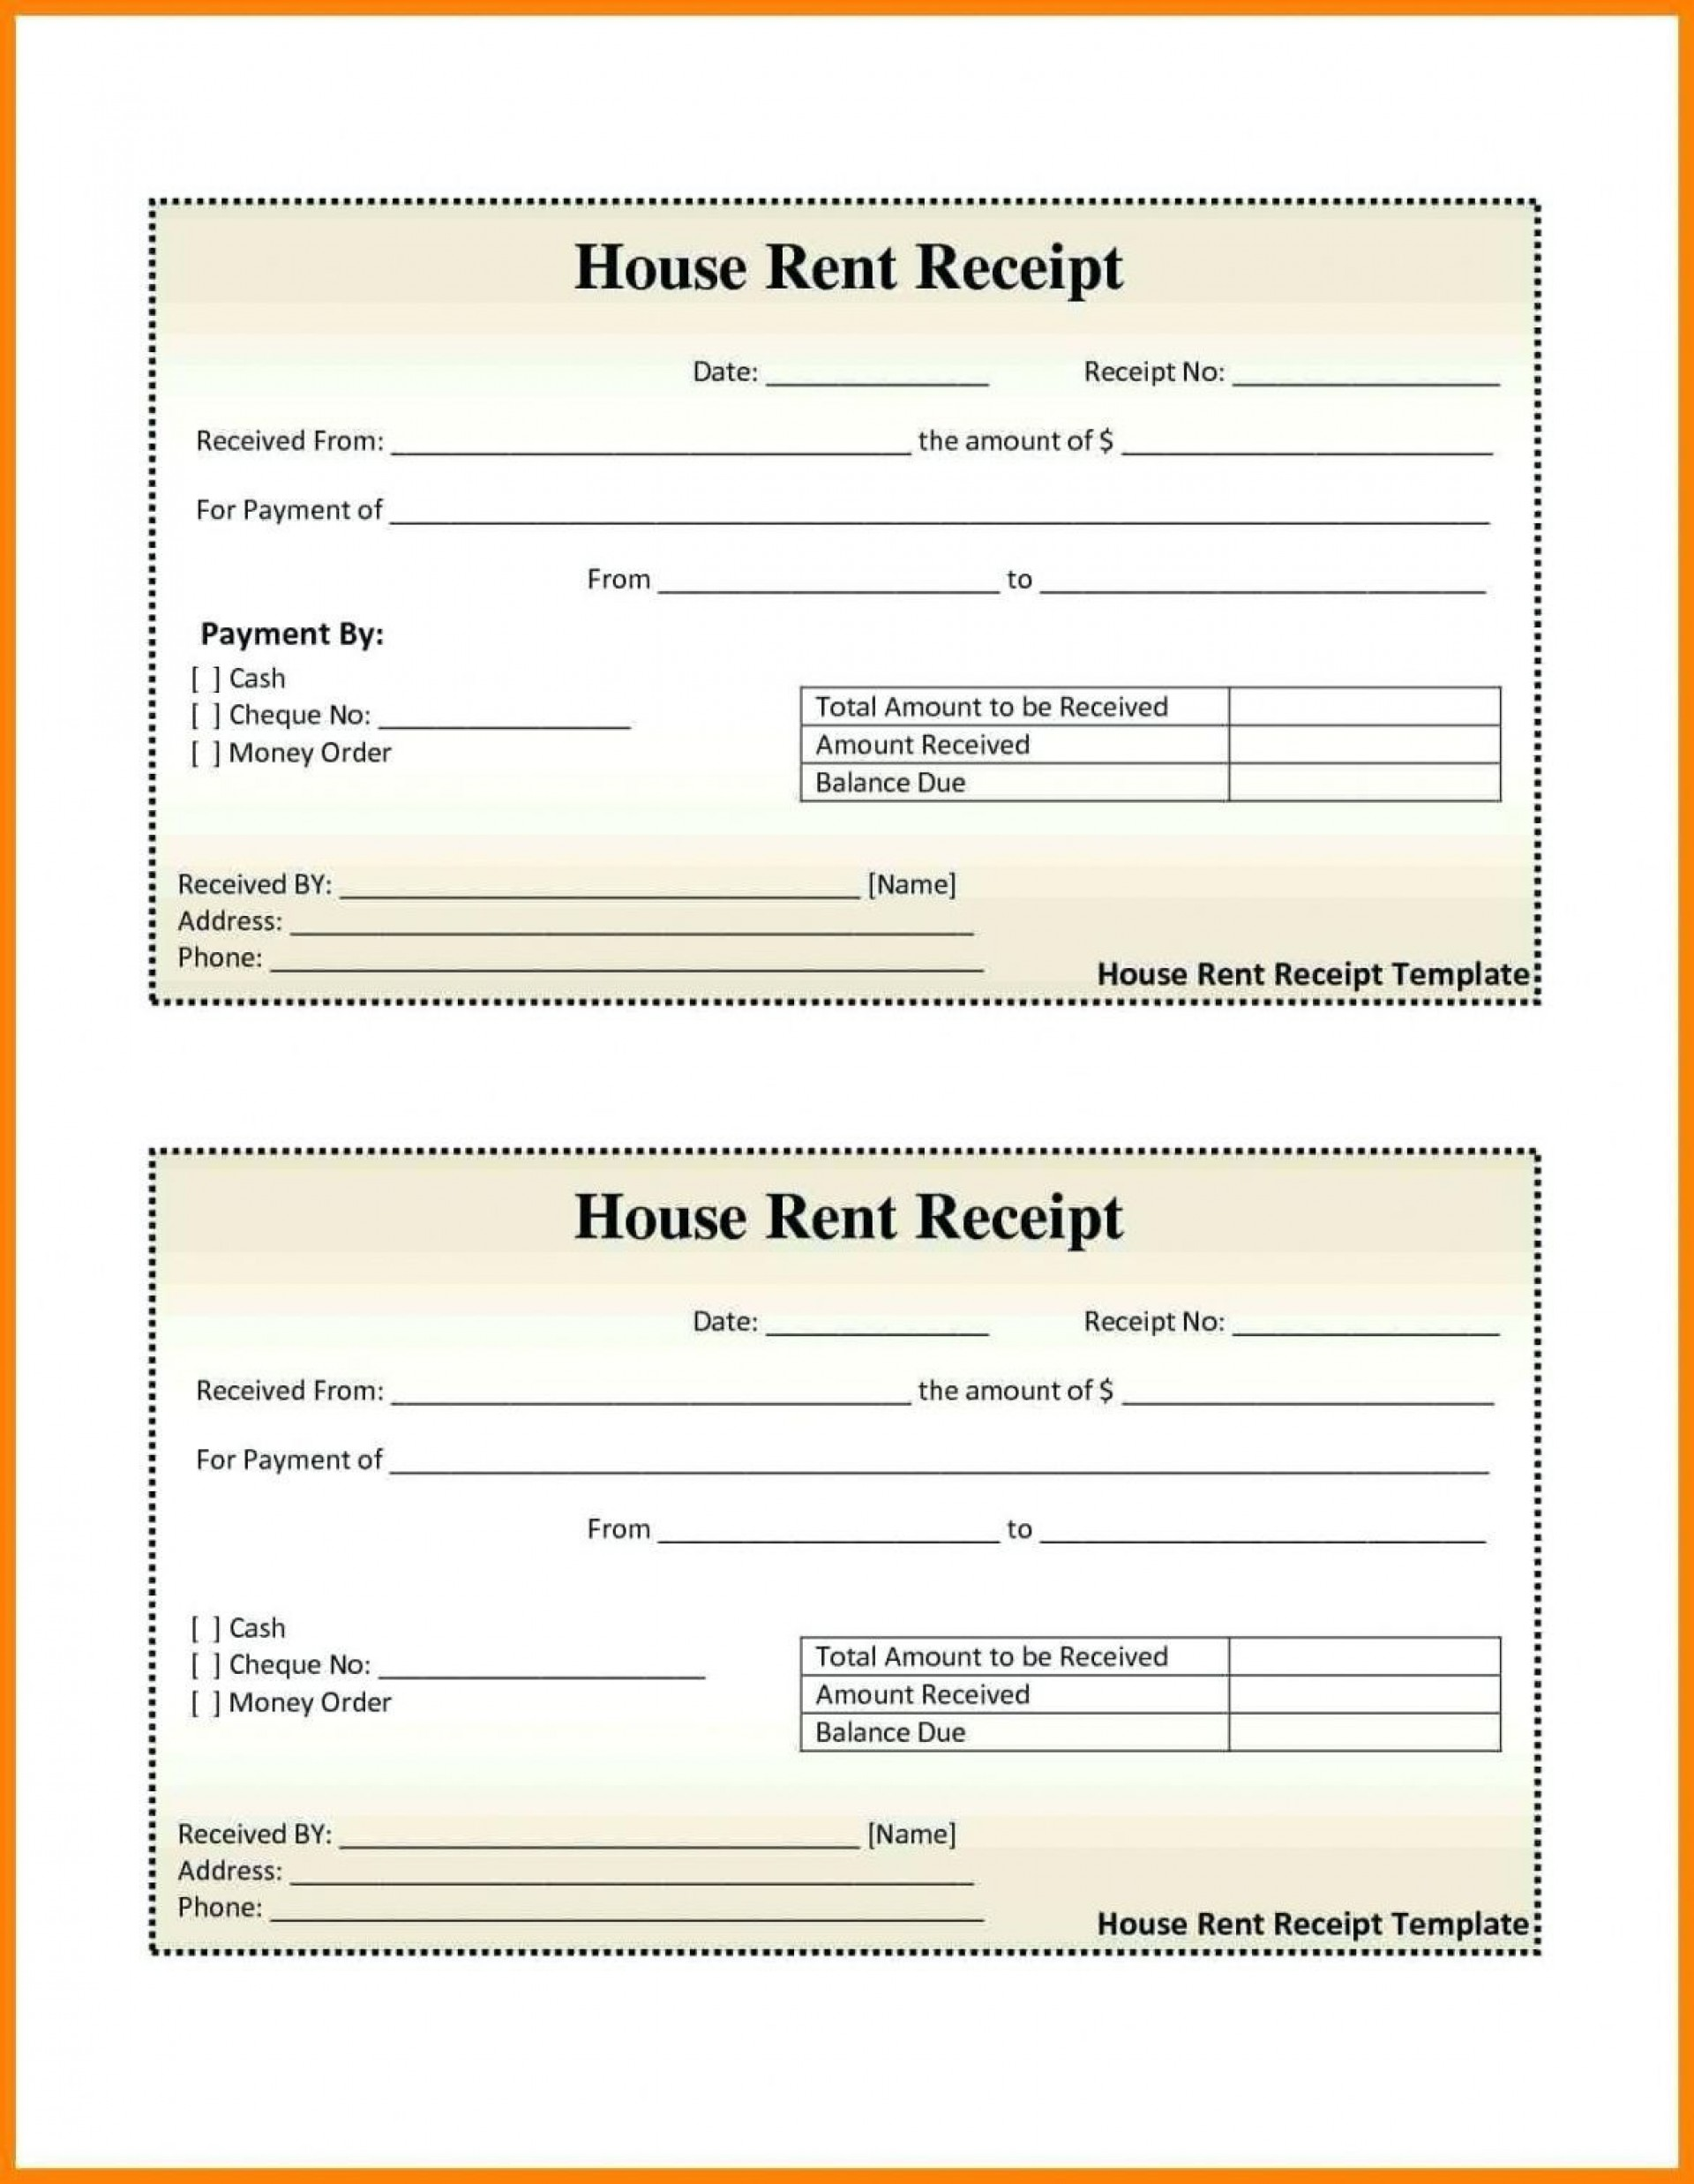 000 Excellent House Rent Receipt Sample Doc Photo  Template India Bill Format Word Document Pdf Download1920